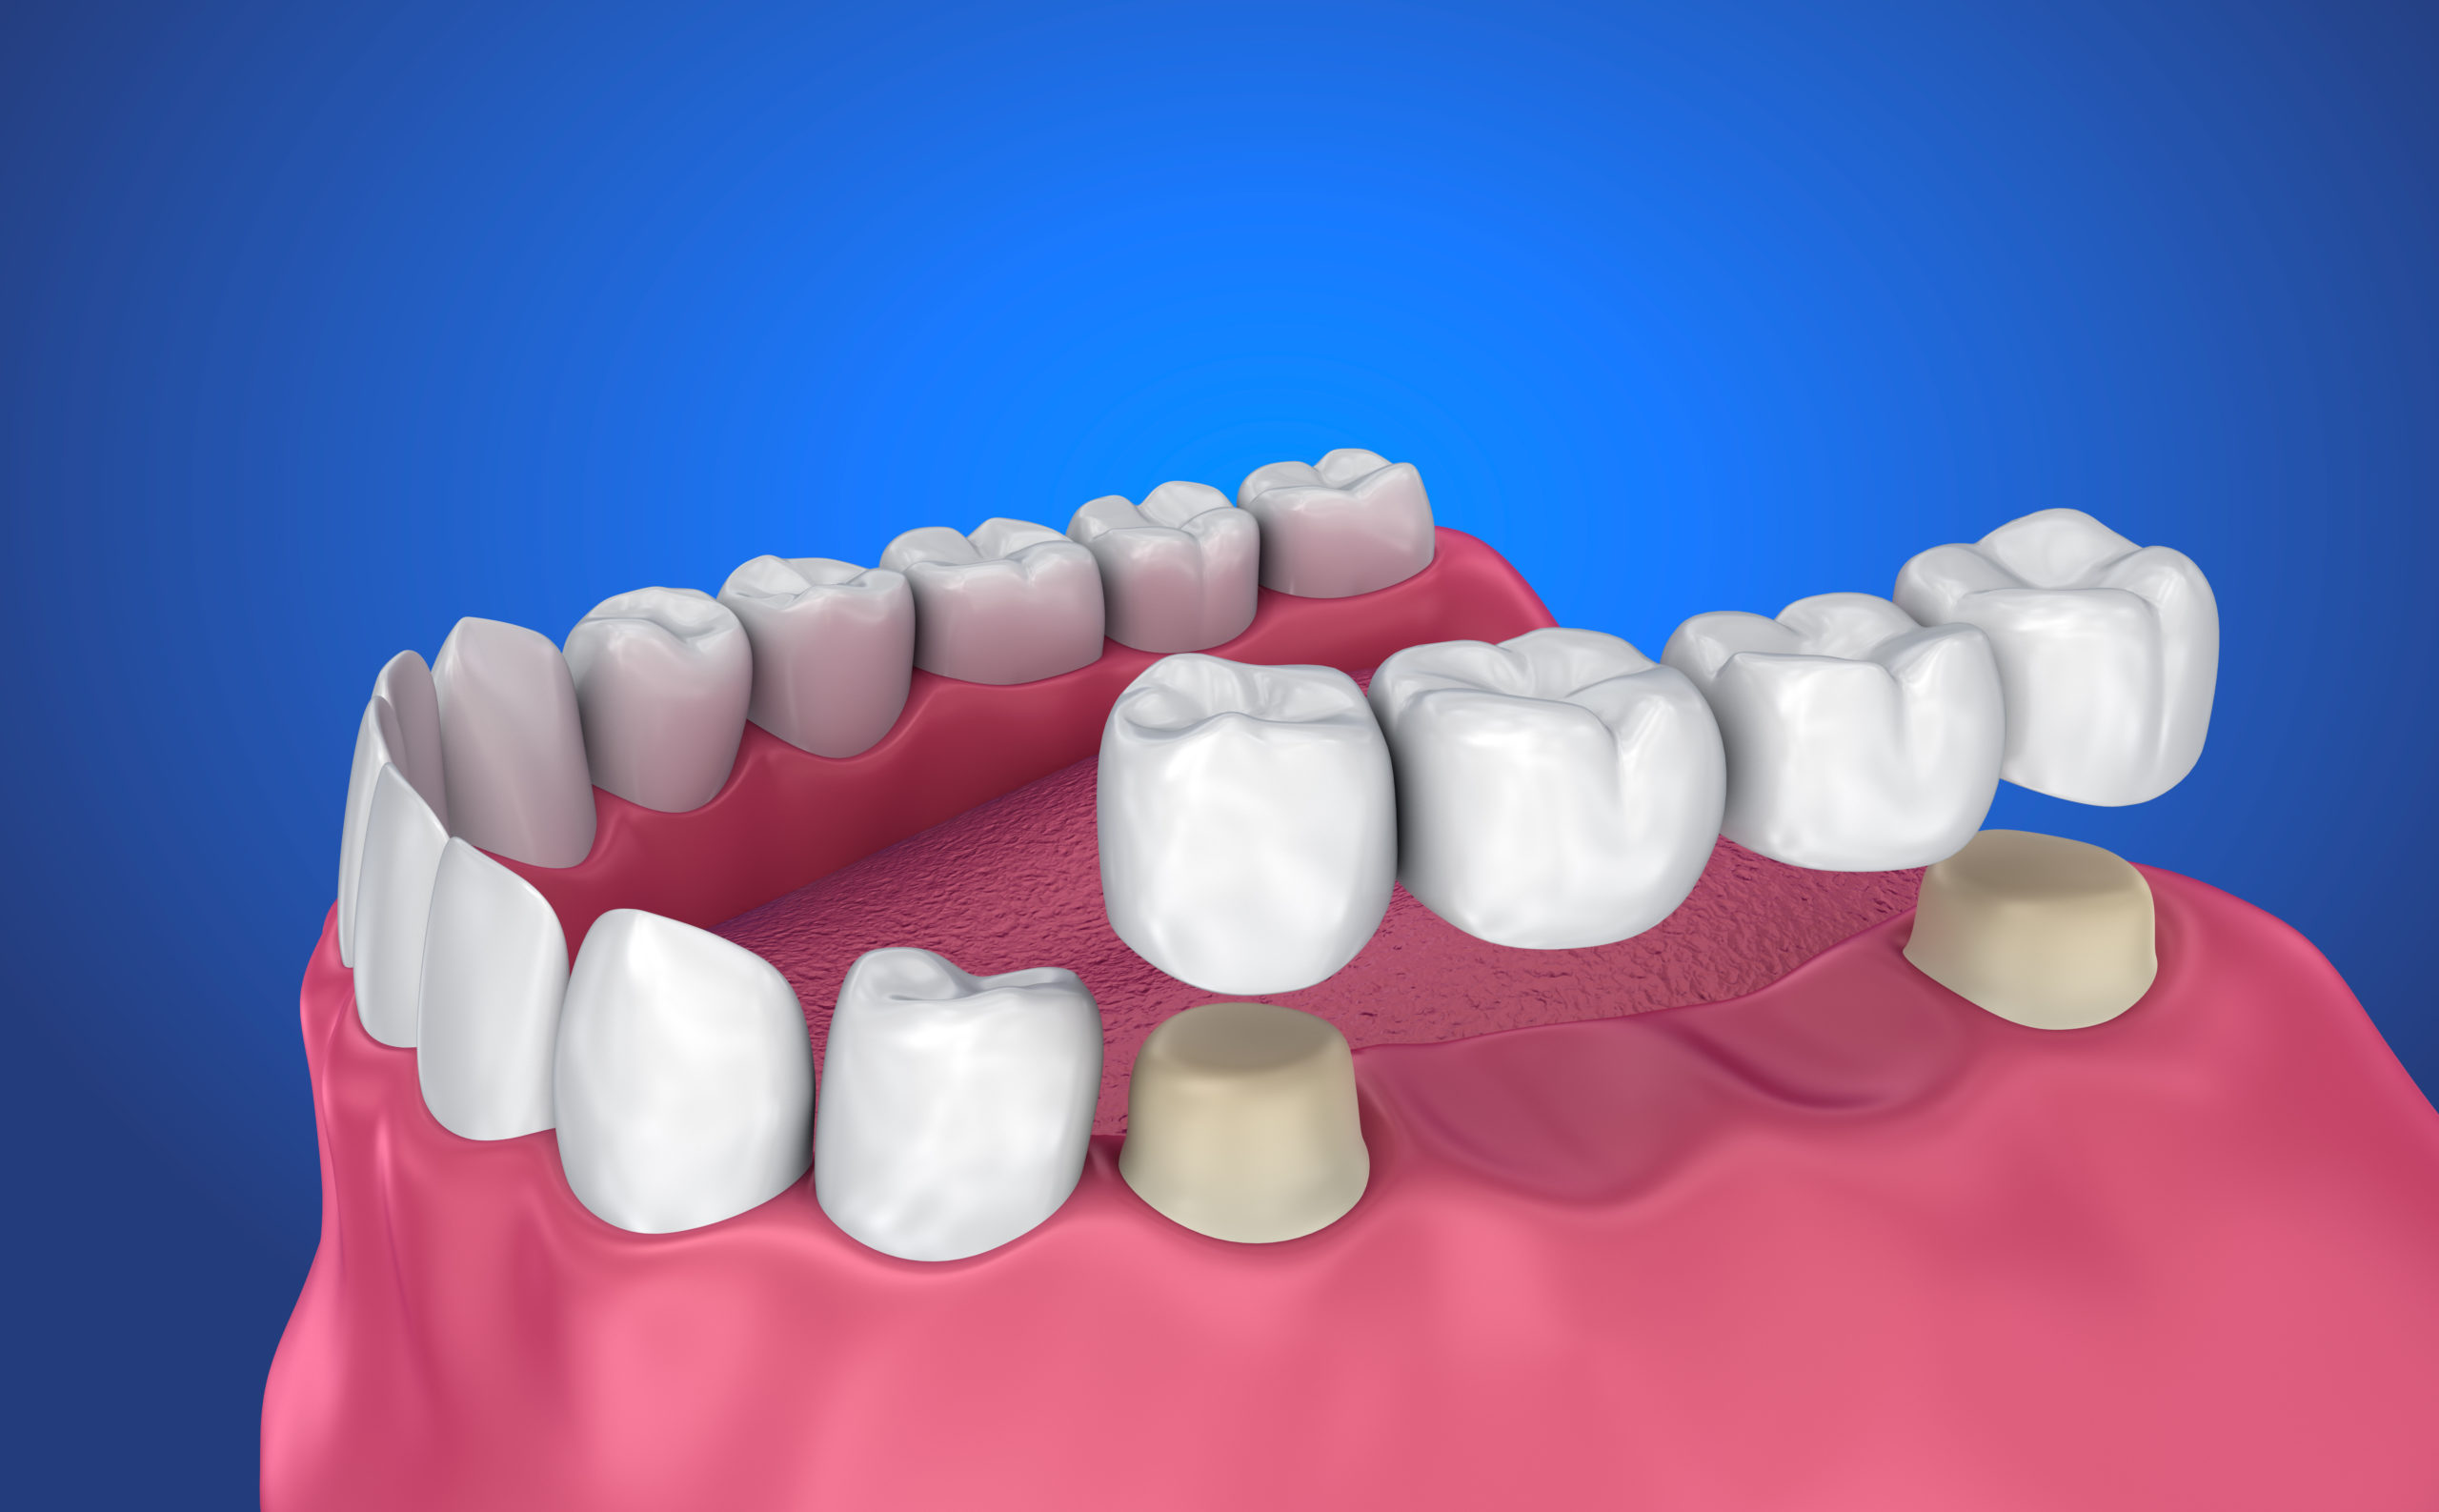 Dental Bridges - What Are They? k